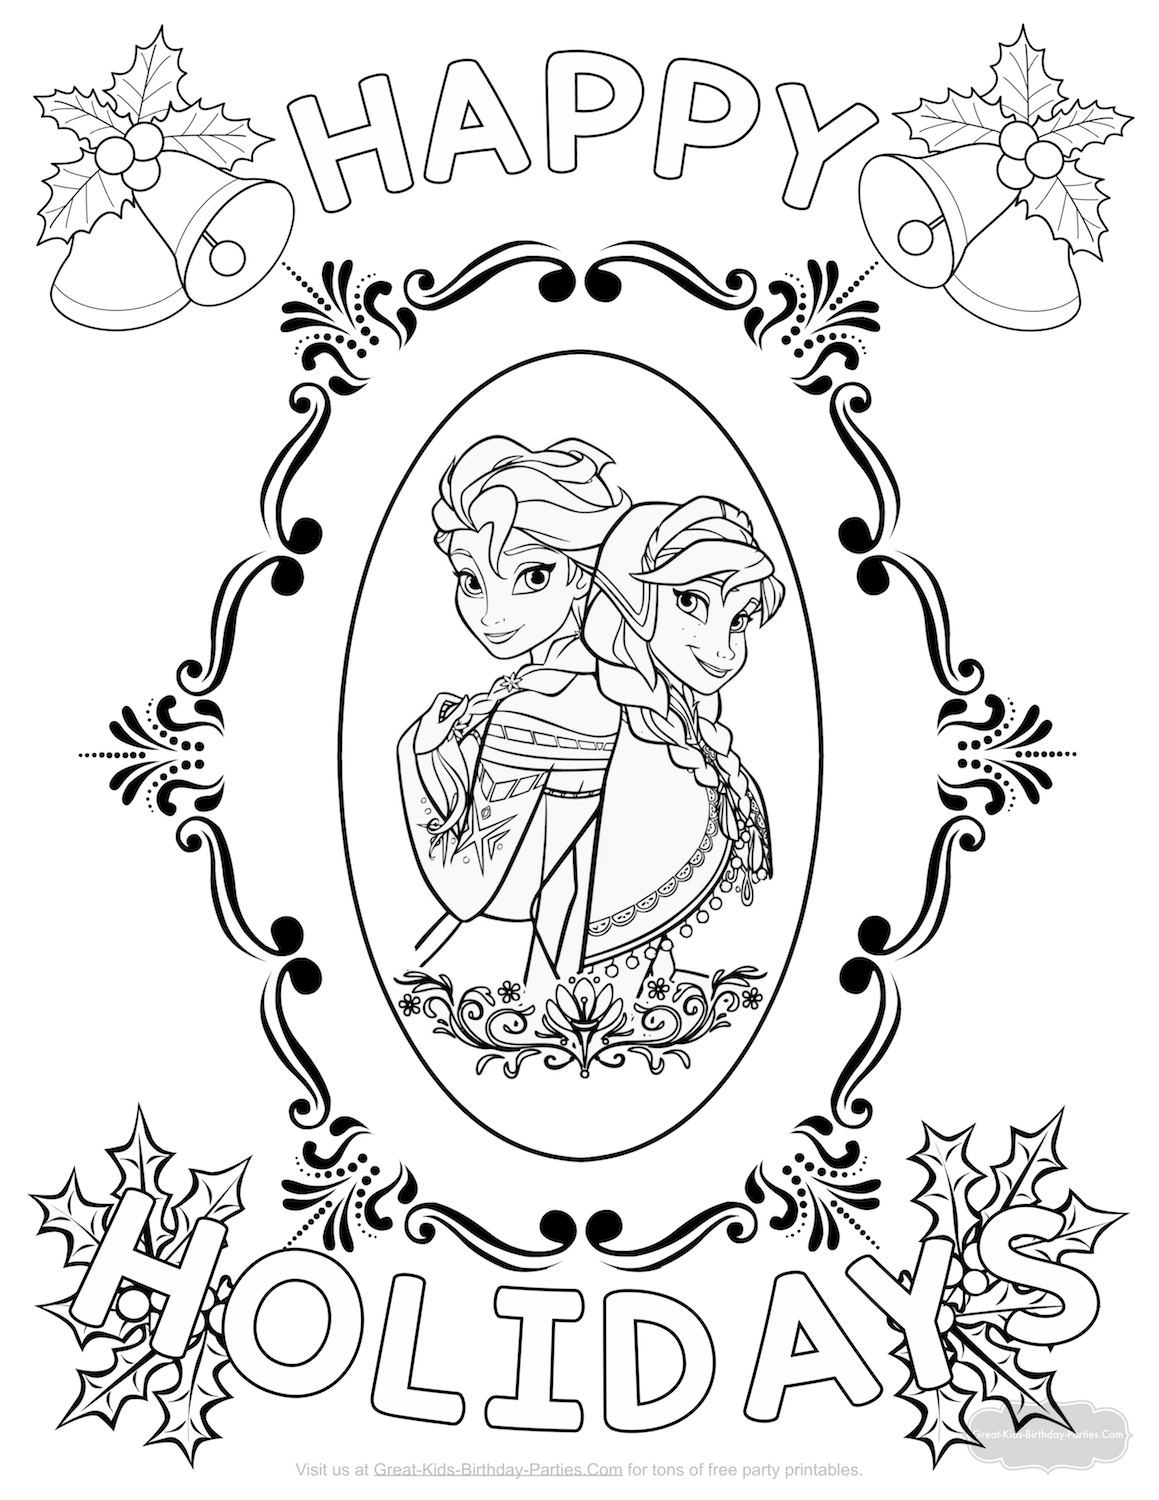 1159x1500 Xfrozen Christmas Coloring Page Png Pagespeed Ic Within